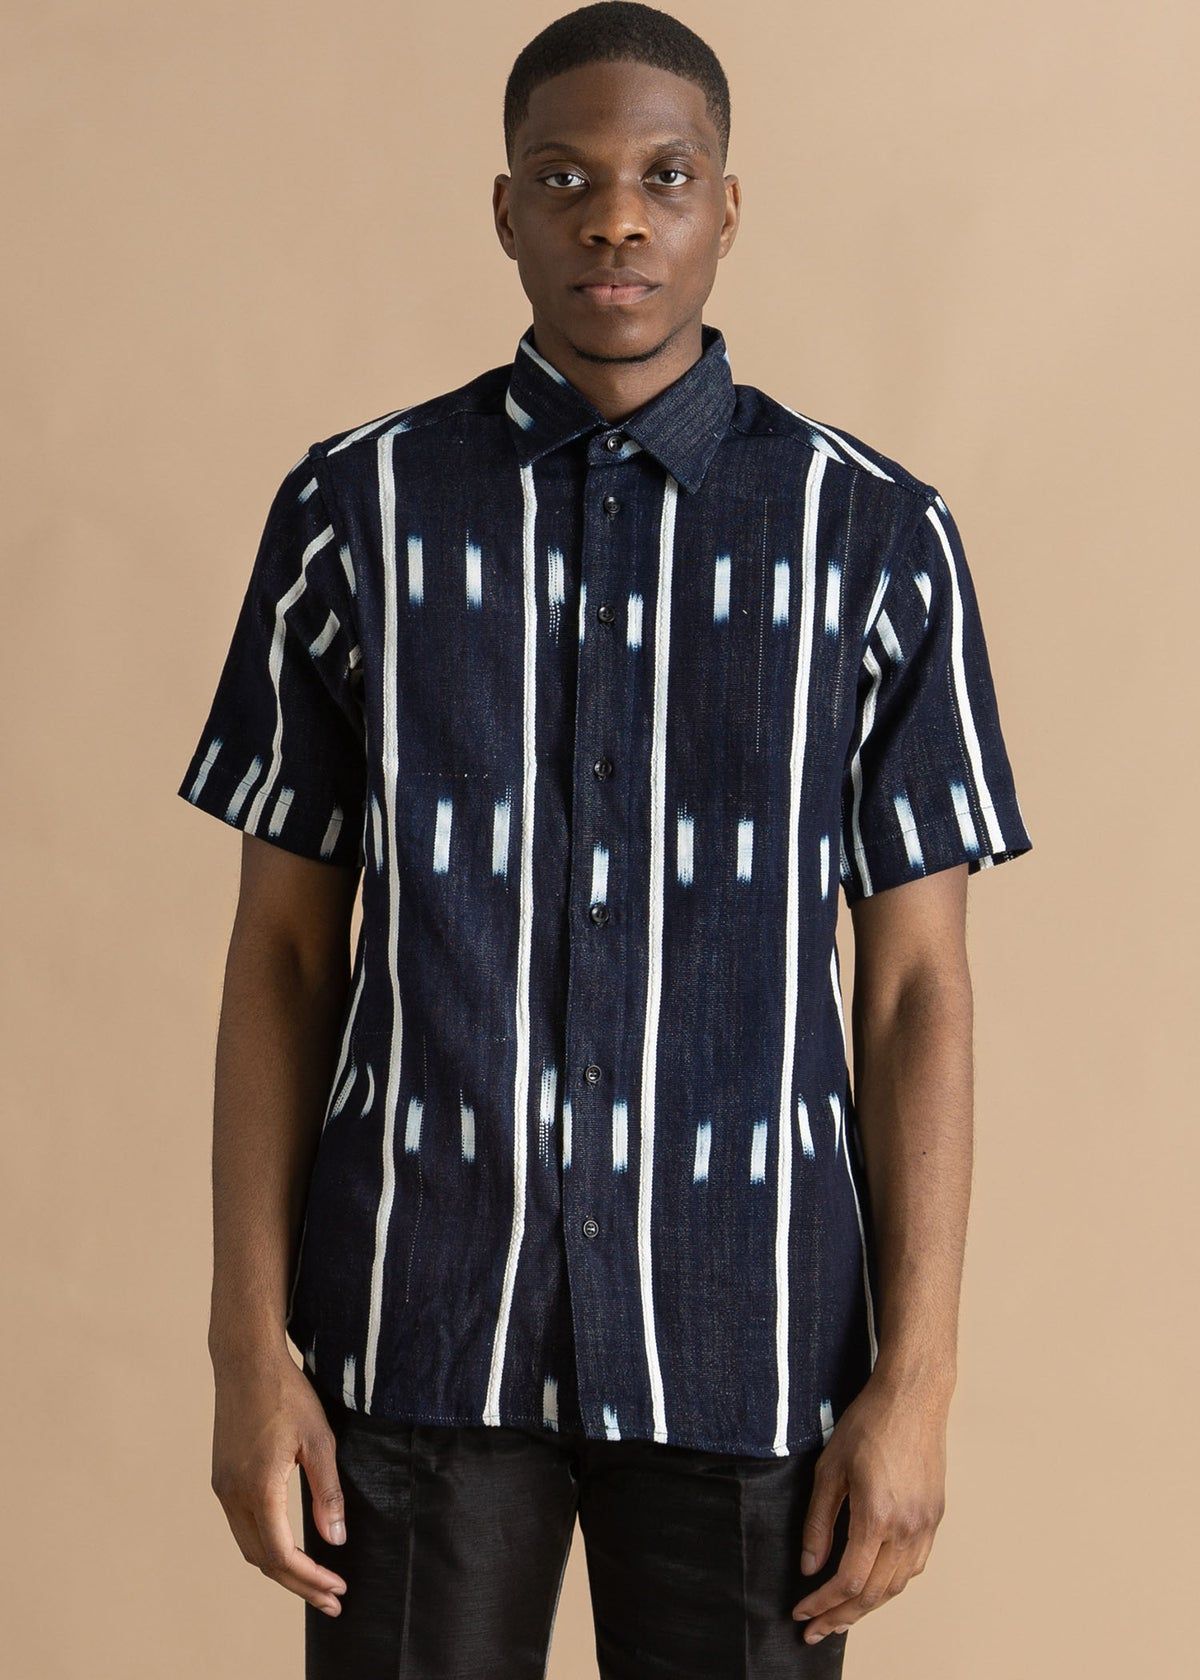 Kente Gentlemen Blue and White Button Up